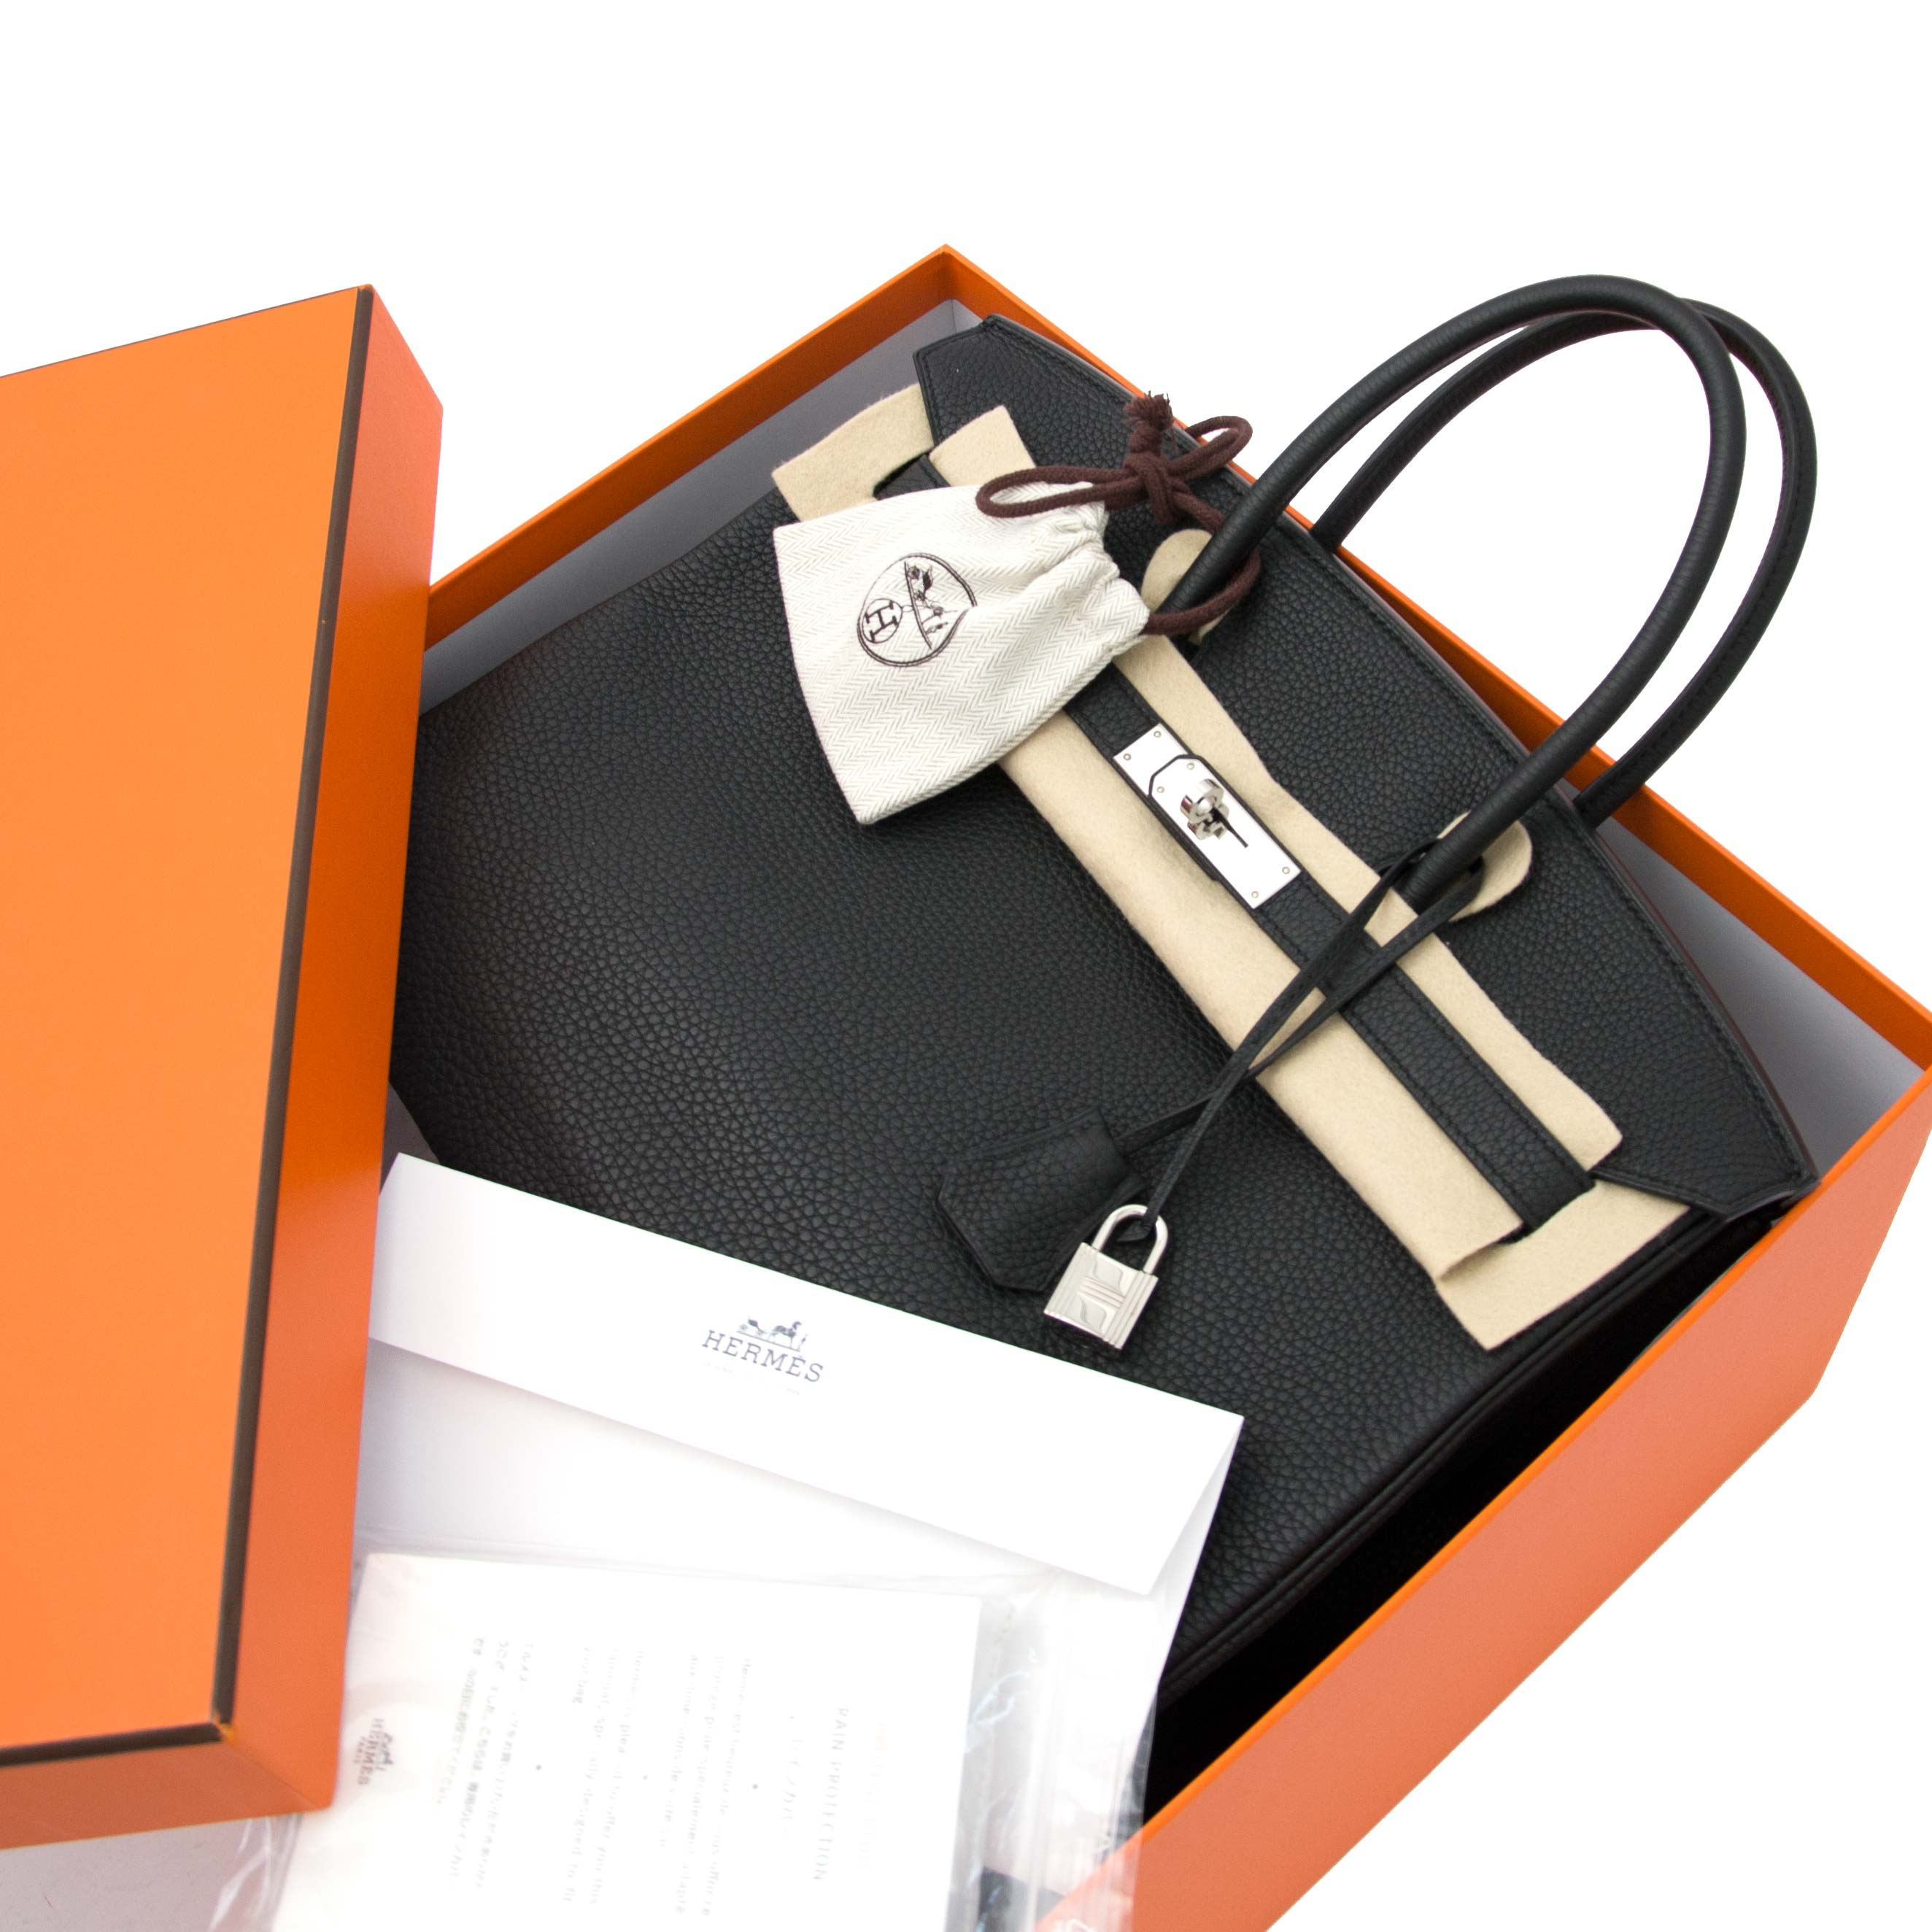 buy safe and secure online at labellov.com skip the waitilist and get your black hermes birkin 35 togo phw right now